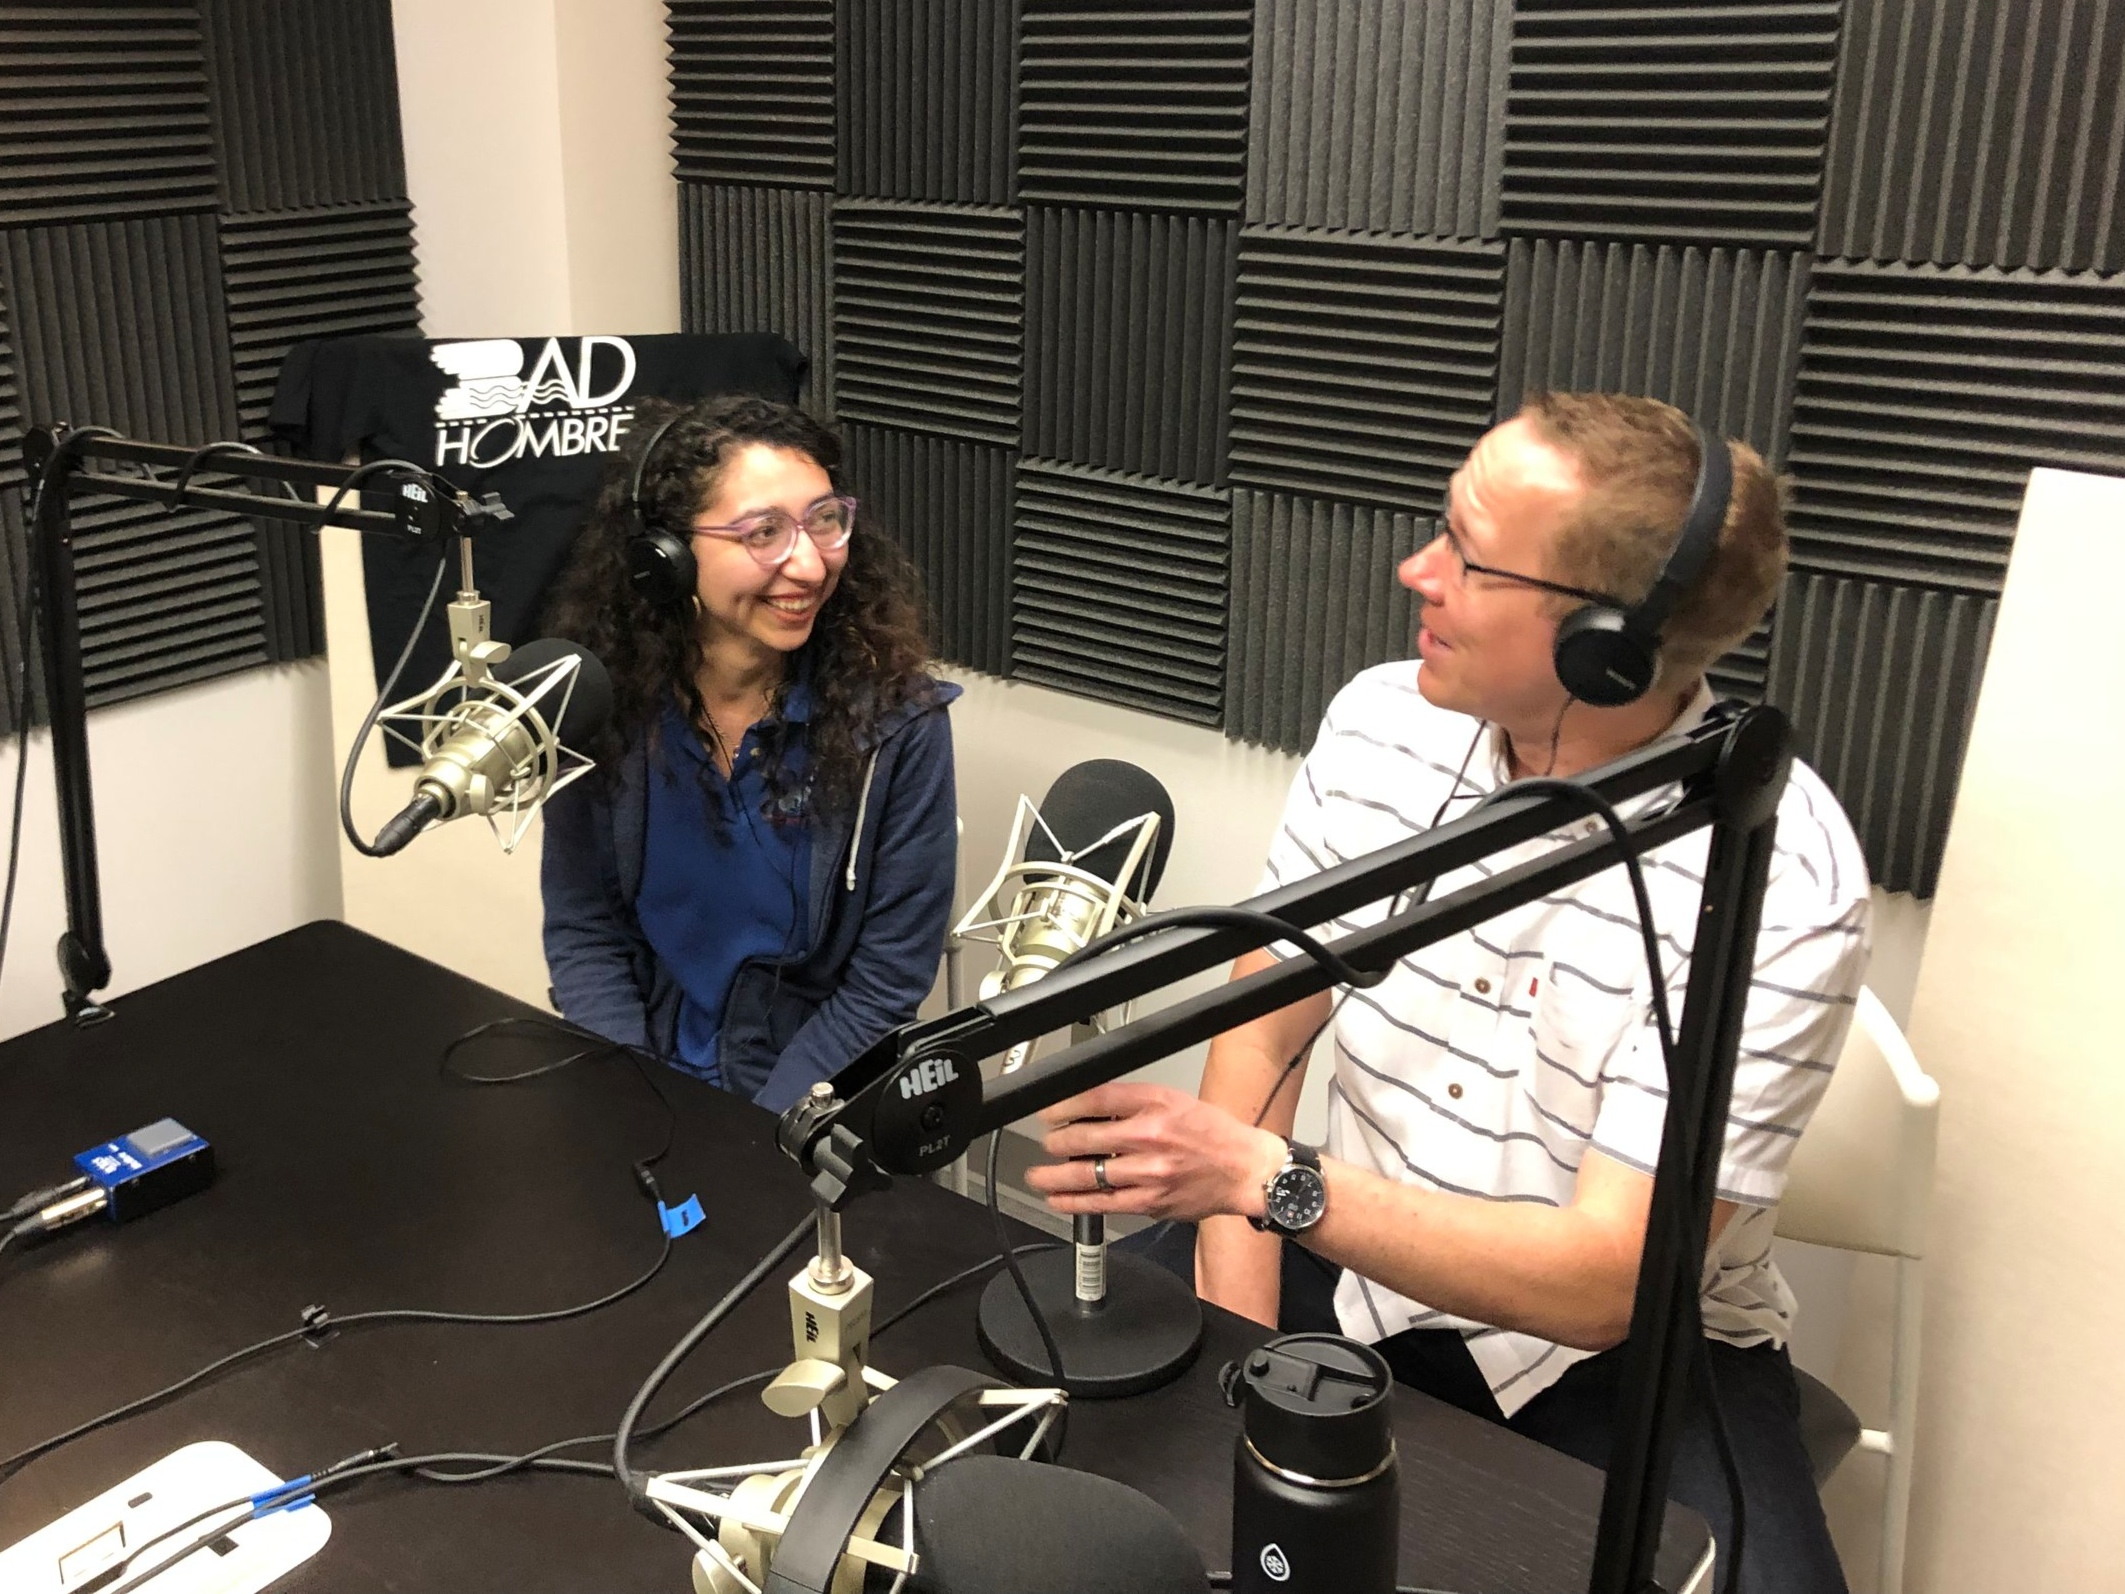 Analaura and Greg in the podcast studio